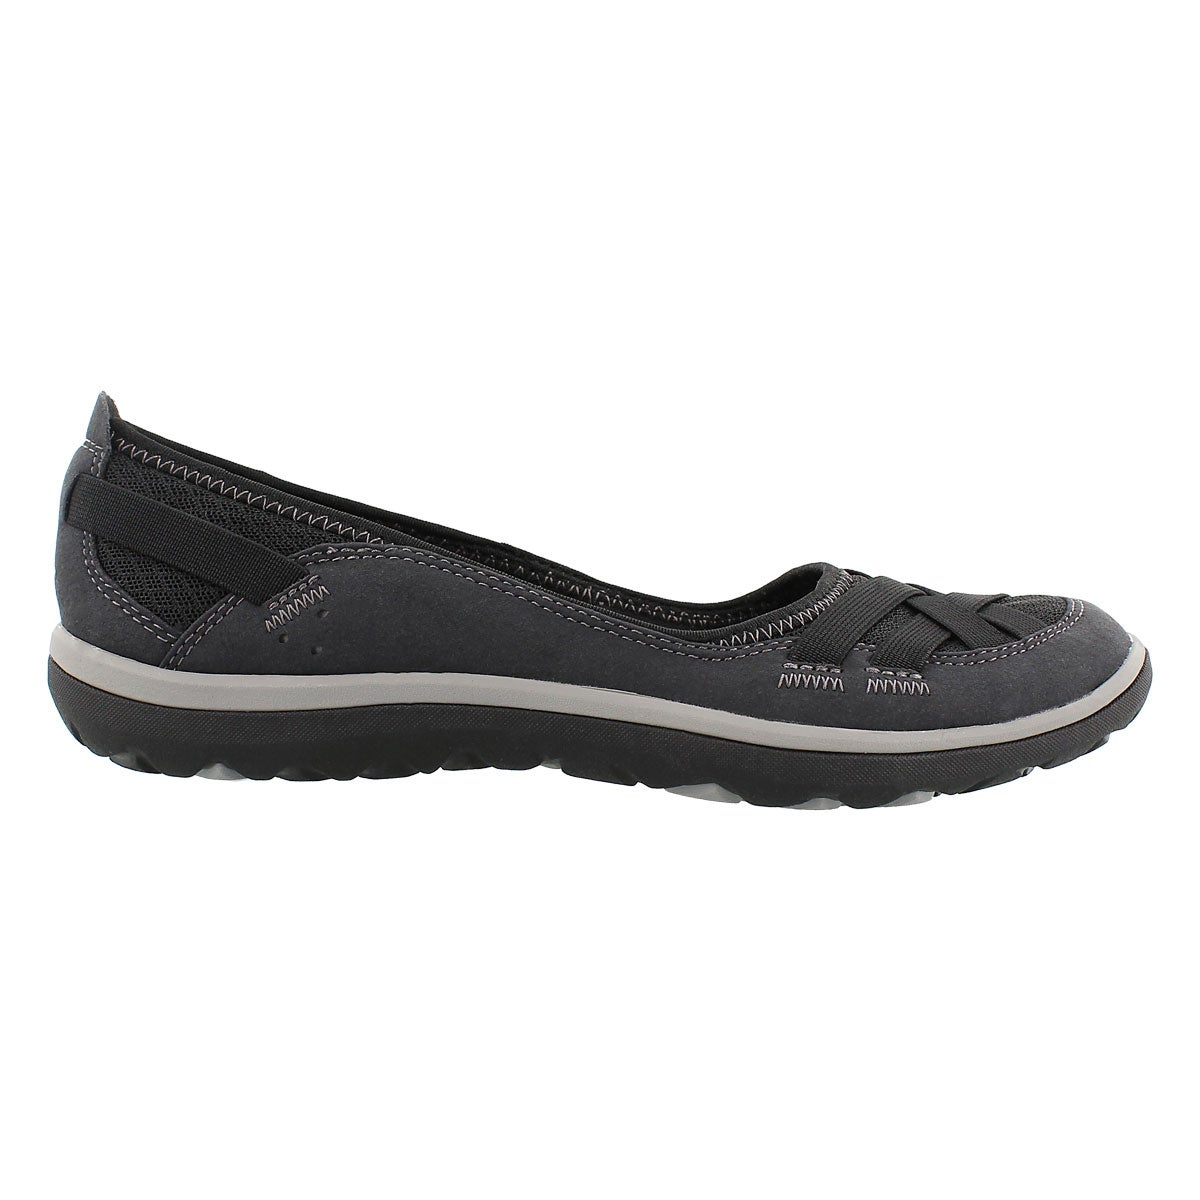 Lds Aria Pump black slip on casual shoe